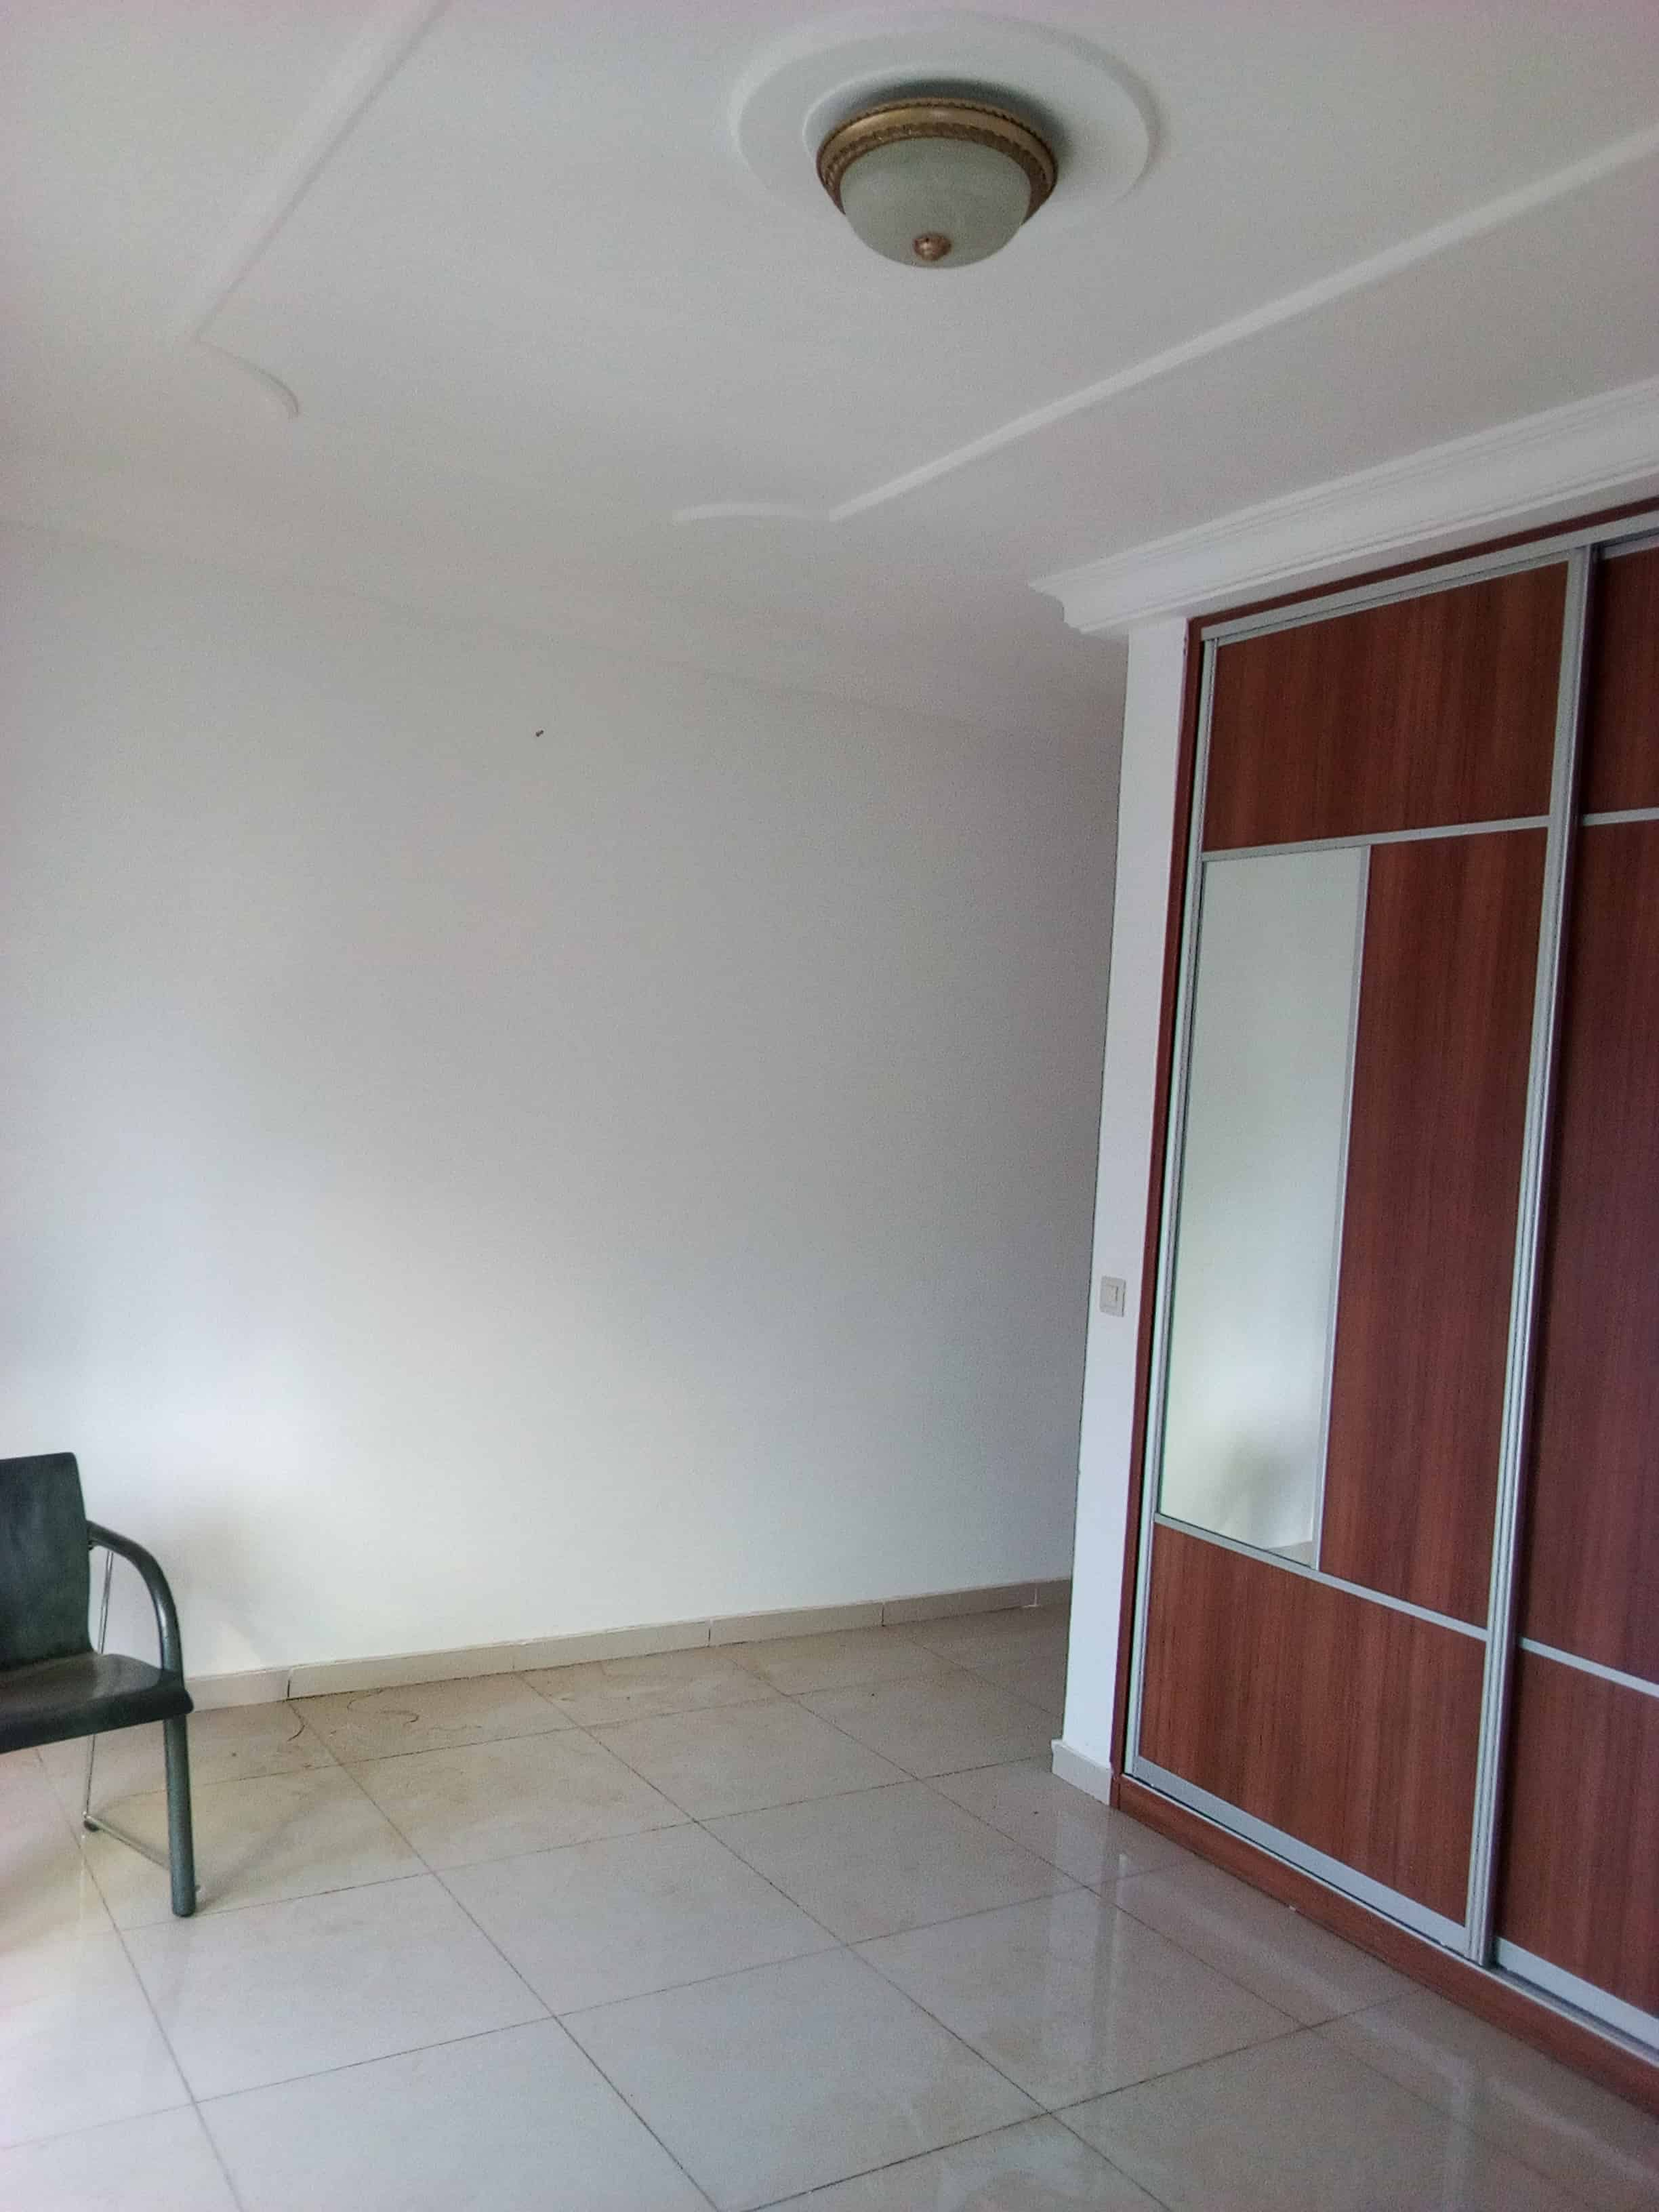 Office to rent at Yaoundé, Bastos, golf -  m2 - 1 700 000 FCFA